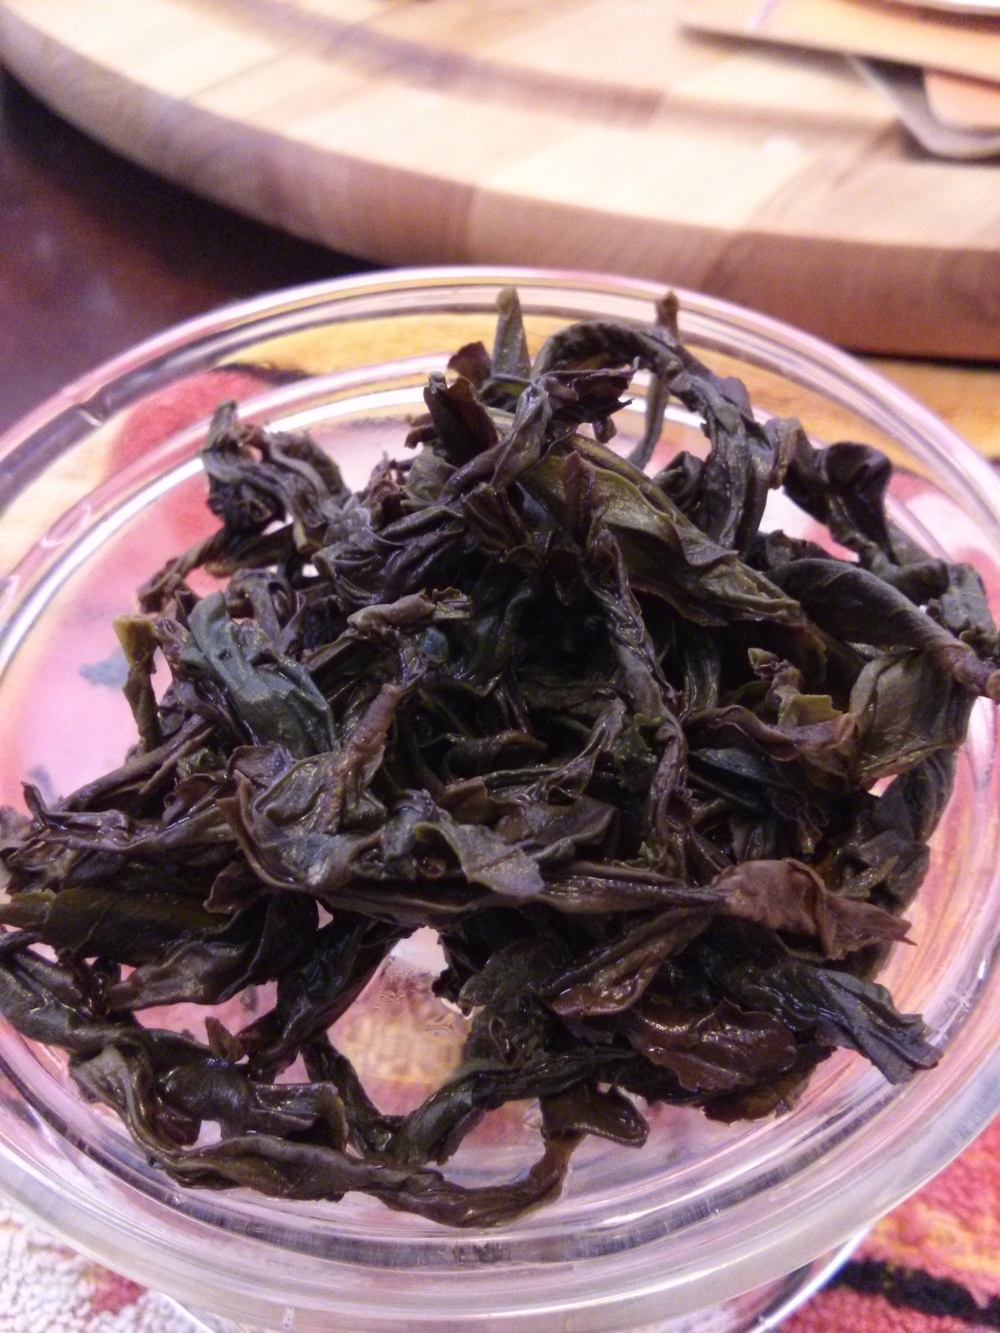 I should have put this tea in my Yixing tea pot, which would complement the roasted taste.  The leaves were large and unfurled without needing a rinse.